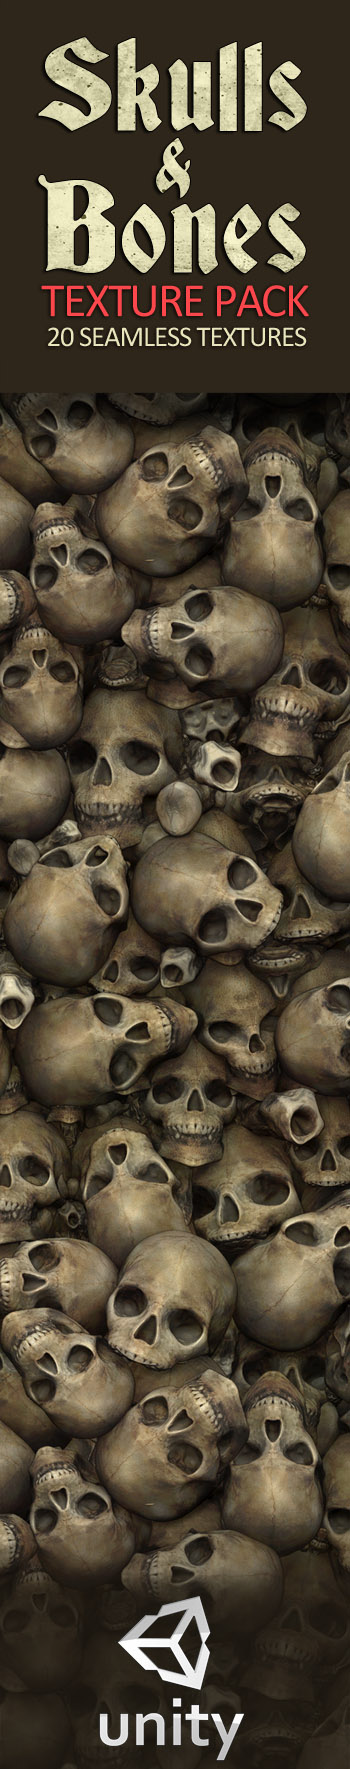 Skulls and Bones Textures  20 Seamless Textures and